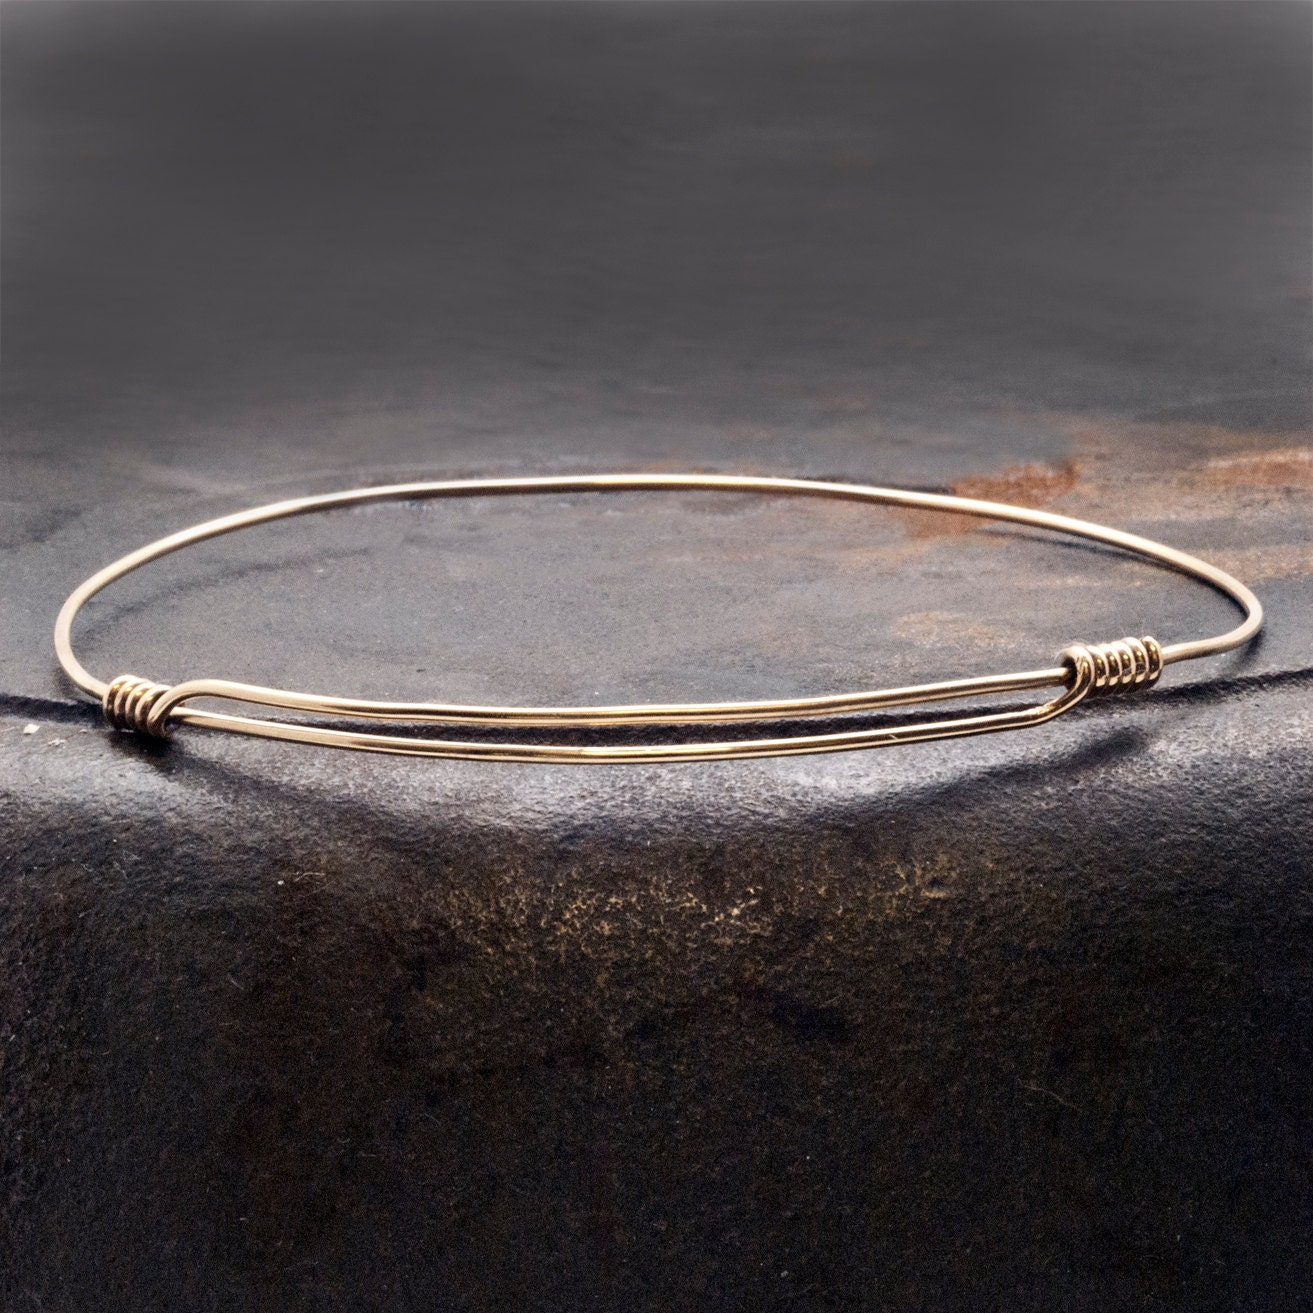 bracelets iya bangles delicate accents with stamped simple products silver bracelet thin bangle minimal mollia small betsy cuff adjustable